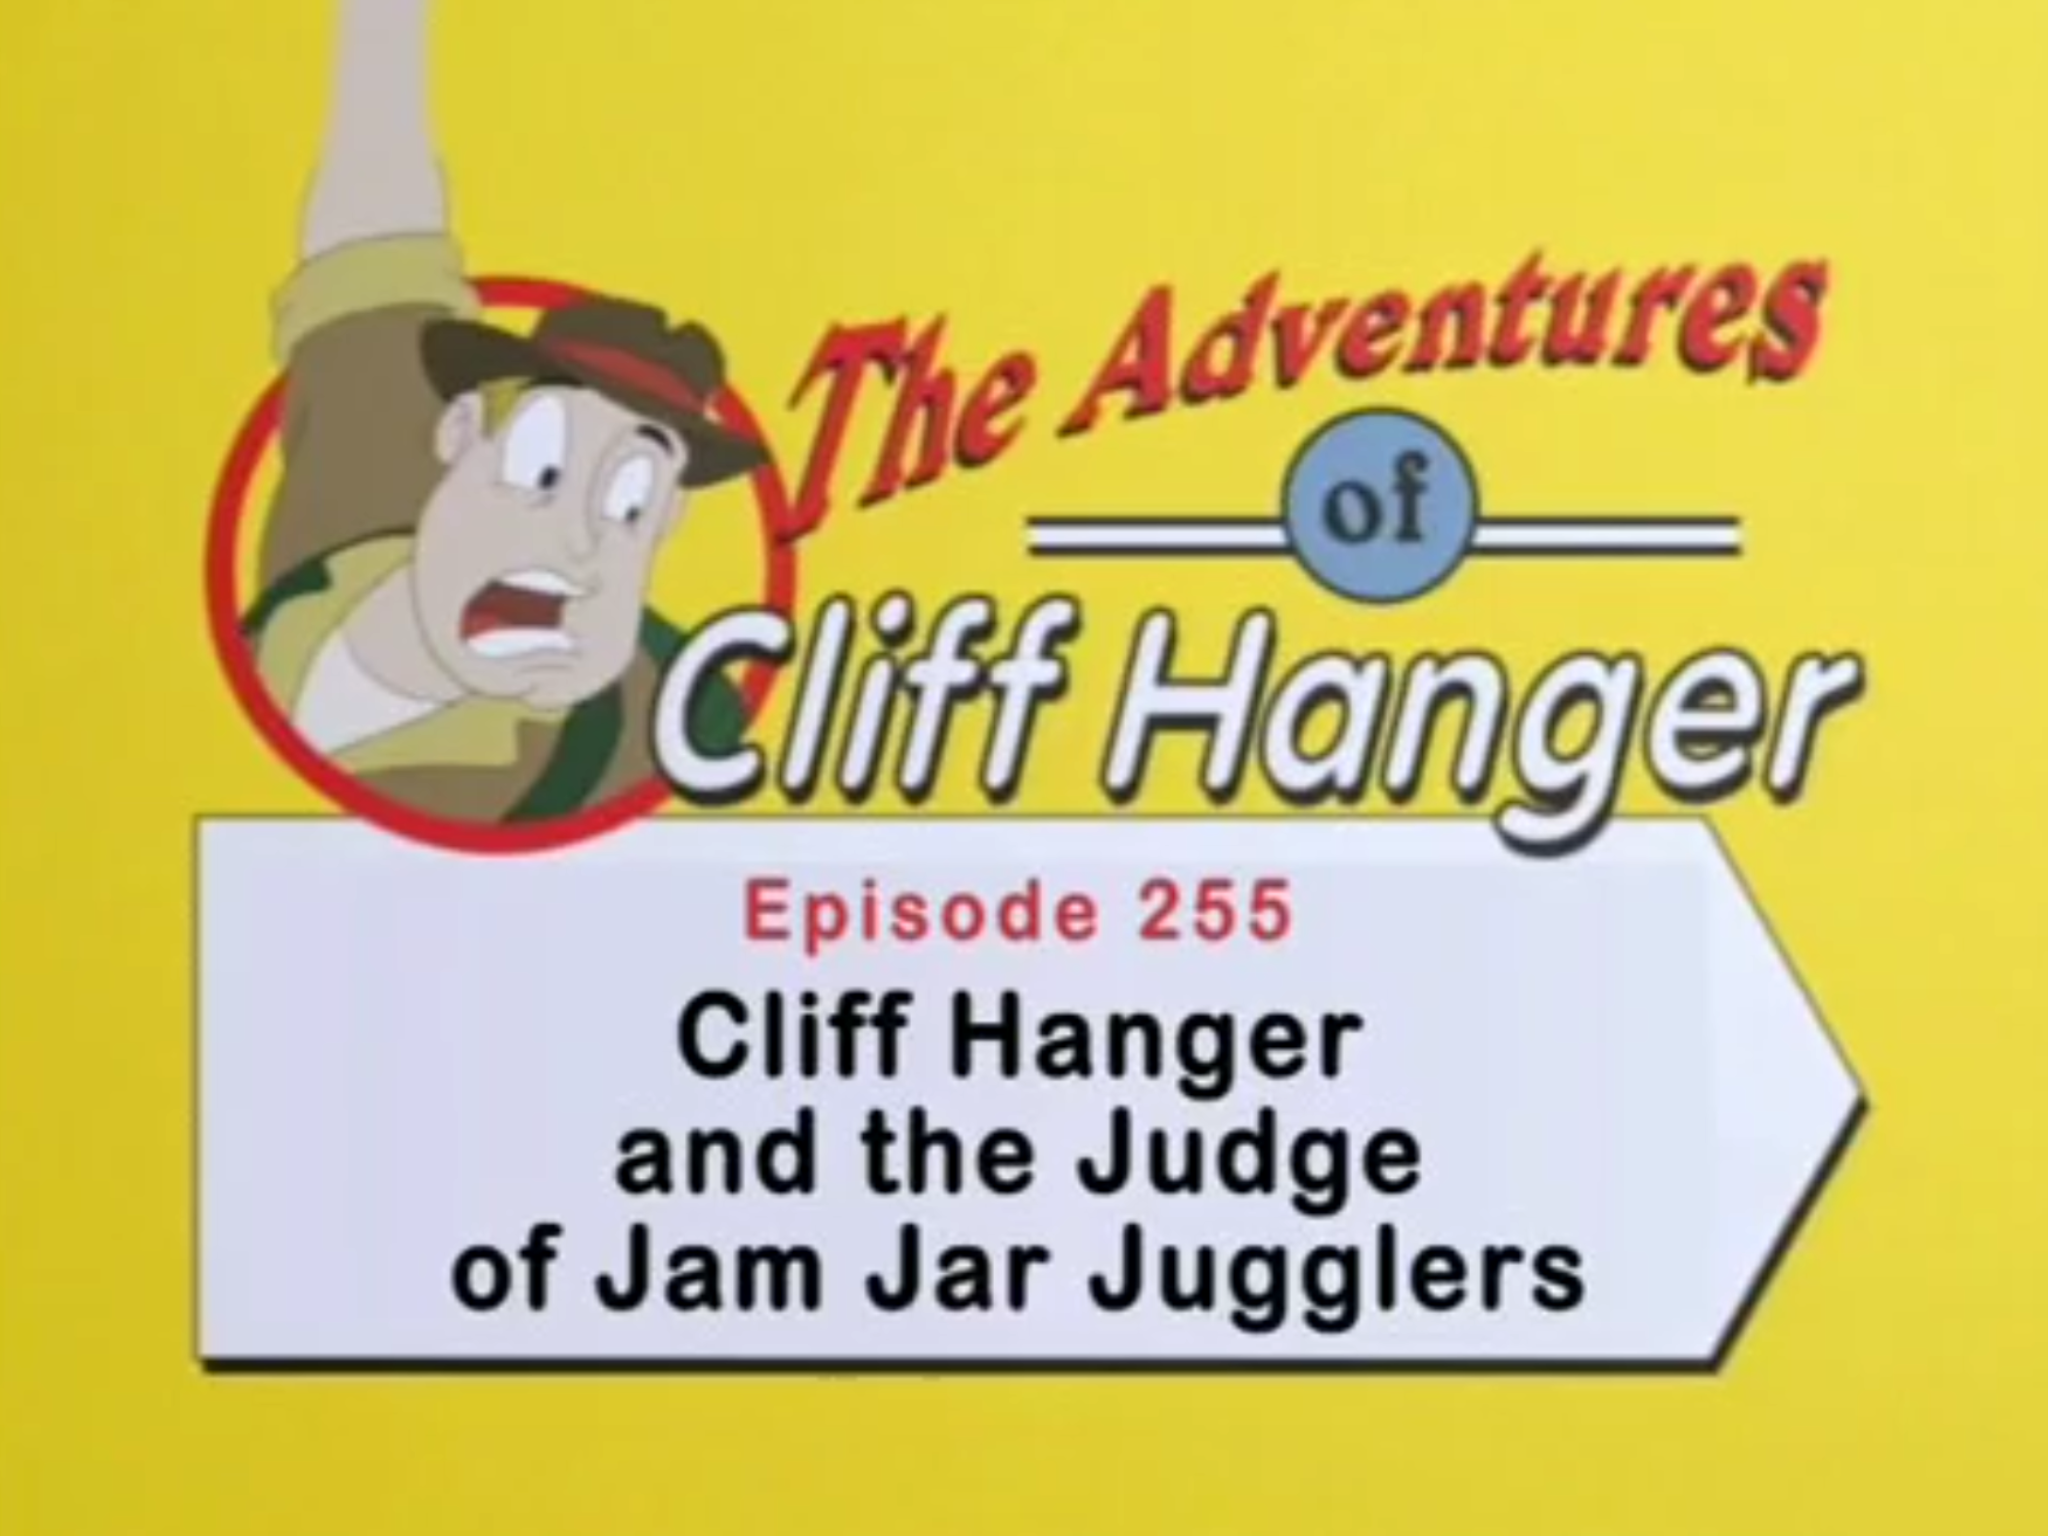 Cliff Hanger and the Judge of Jam Jar Jugglers